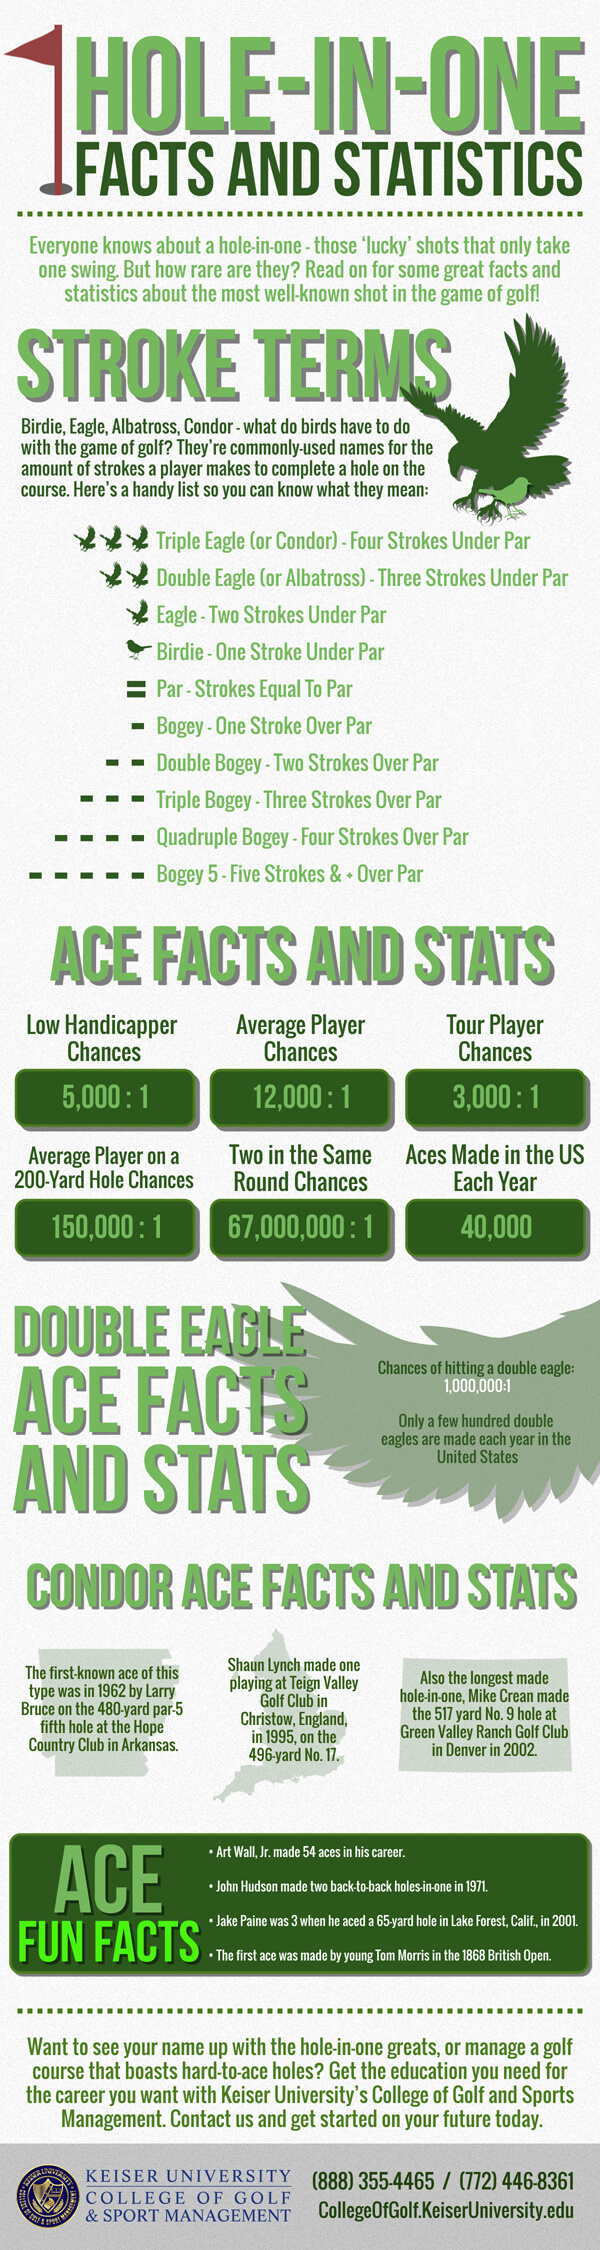 COG-Hole-in-One-Facts-and-Statistics-infographic